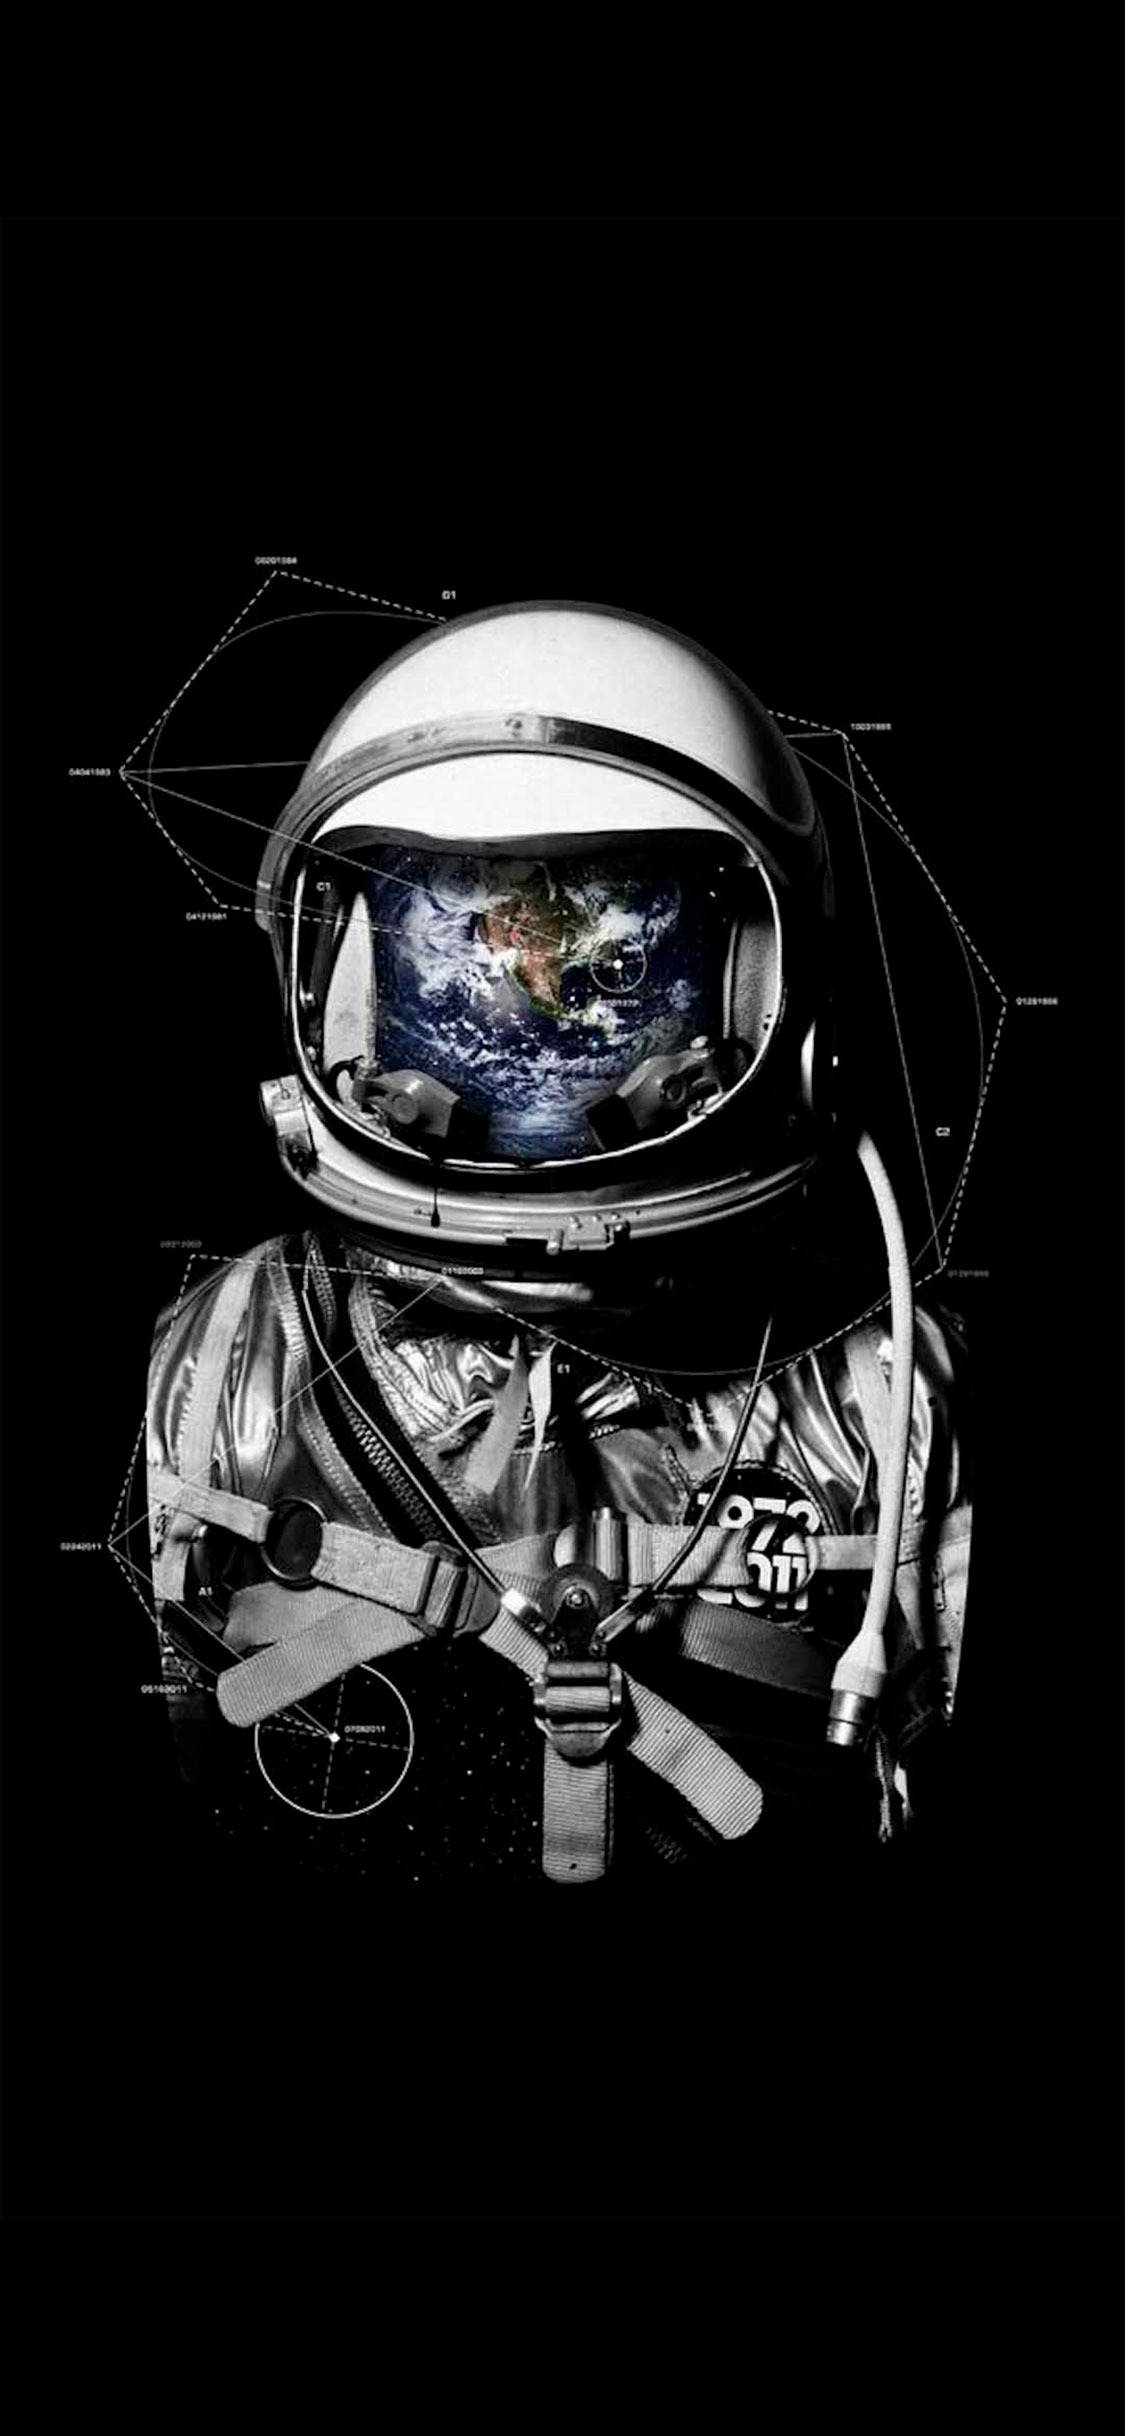 iPhone wallpaper astronaut2 Astronaut